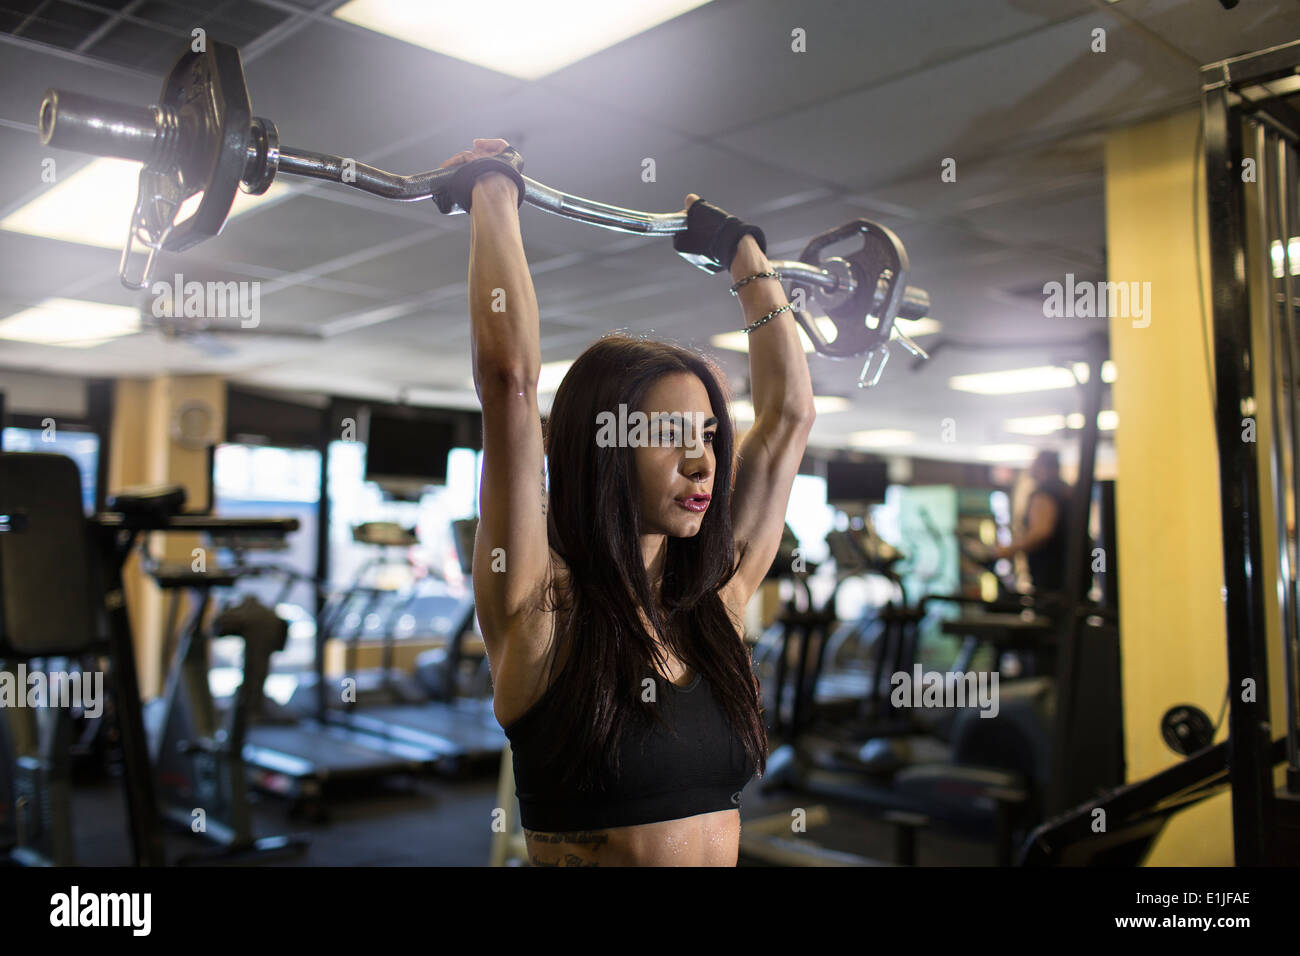 Mid adult woman using barbell in gym Photo Stock